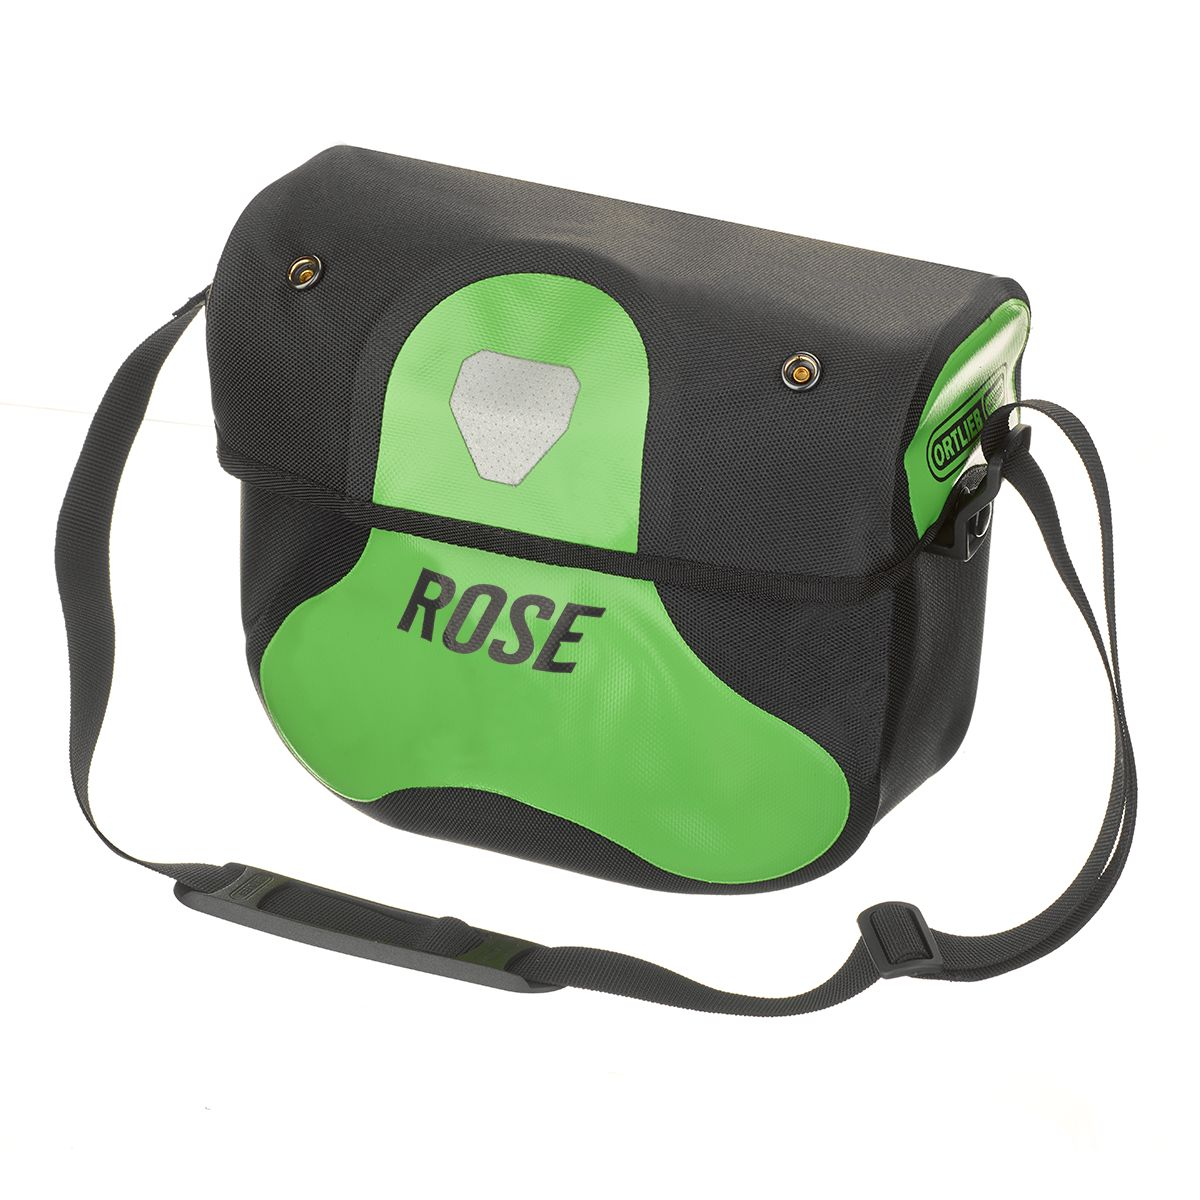 ULTIMATE5 CLASSIC/ROSE handlebar bag